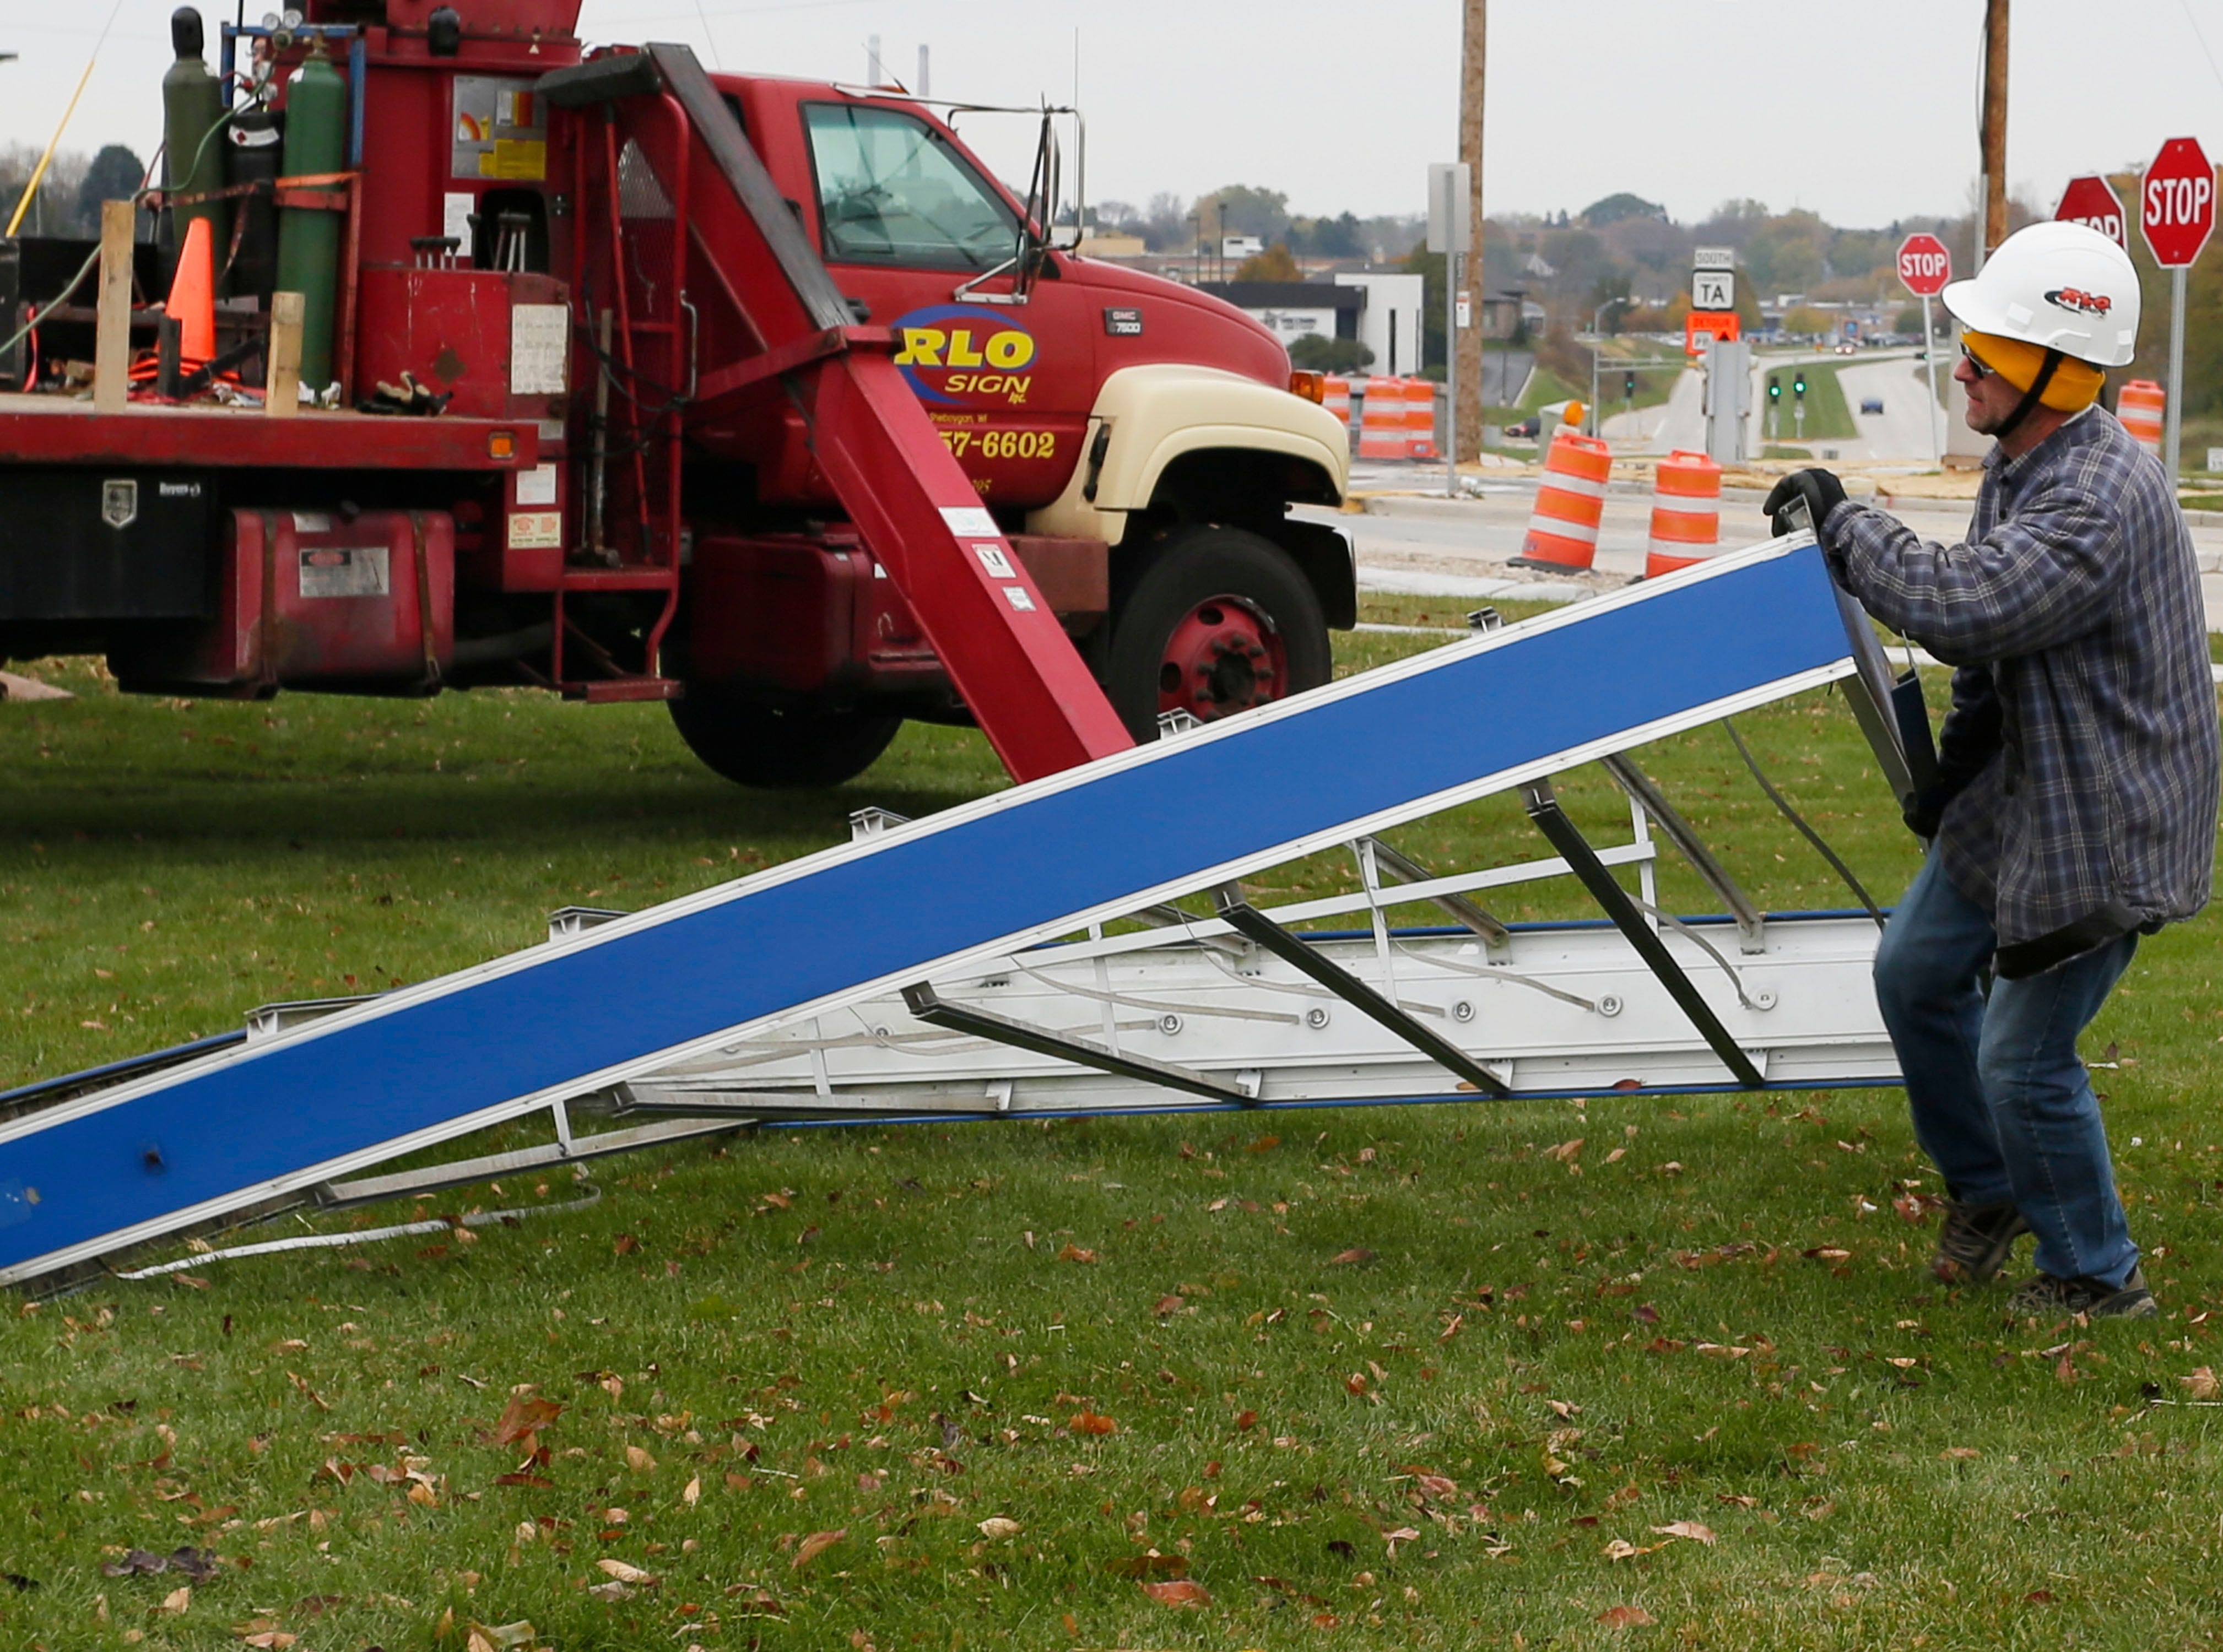 RLO Signs' Fred Bertram moves a sign frame while dismantling the iconic Sheboygan Memorial Mall, Friday, October 26, 2018, in Sheboygan, Wis.